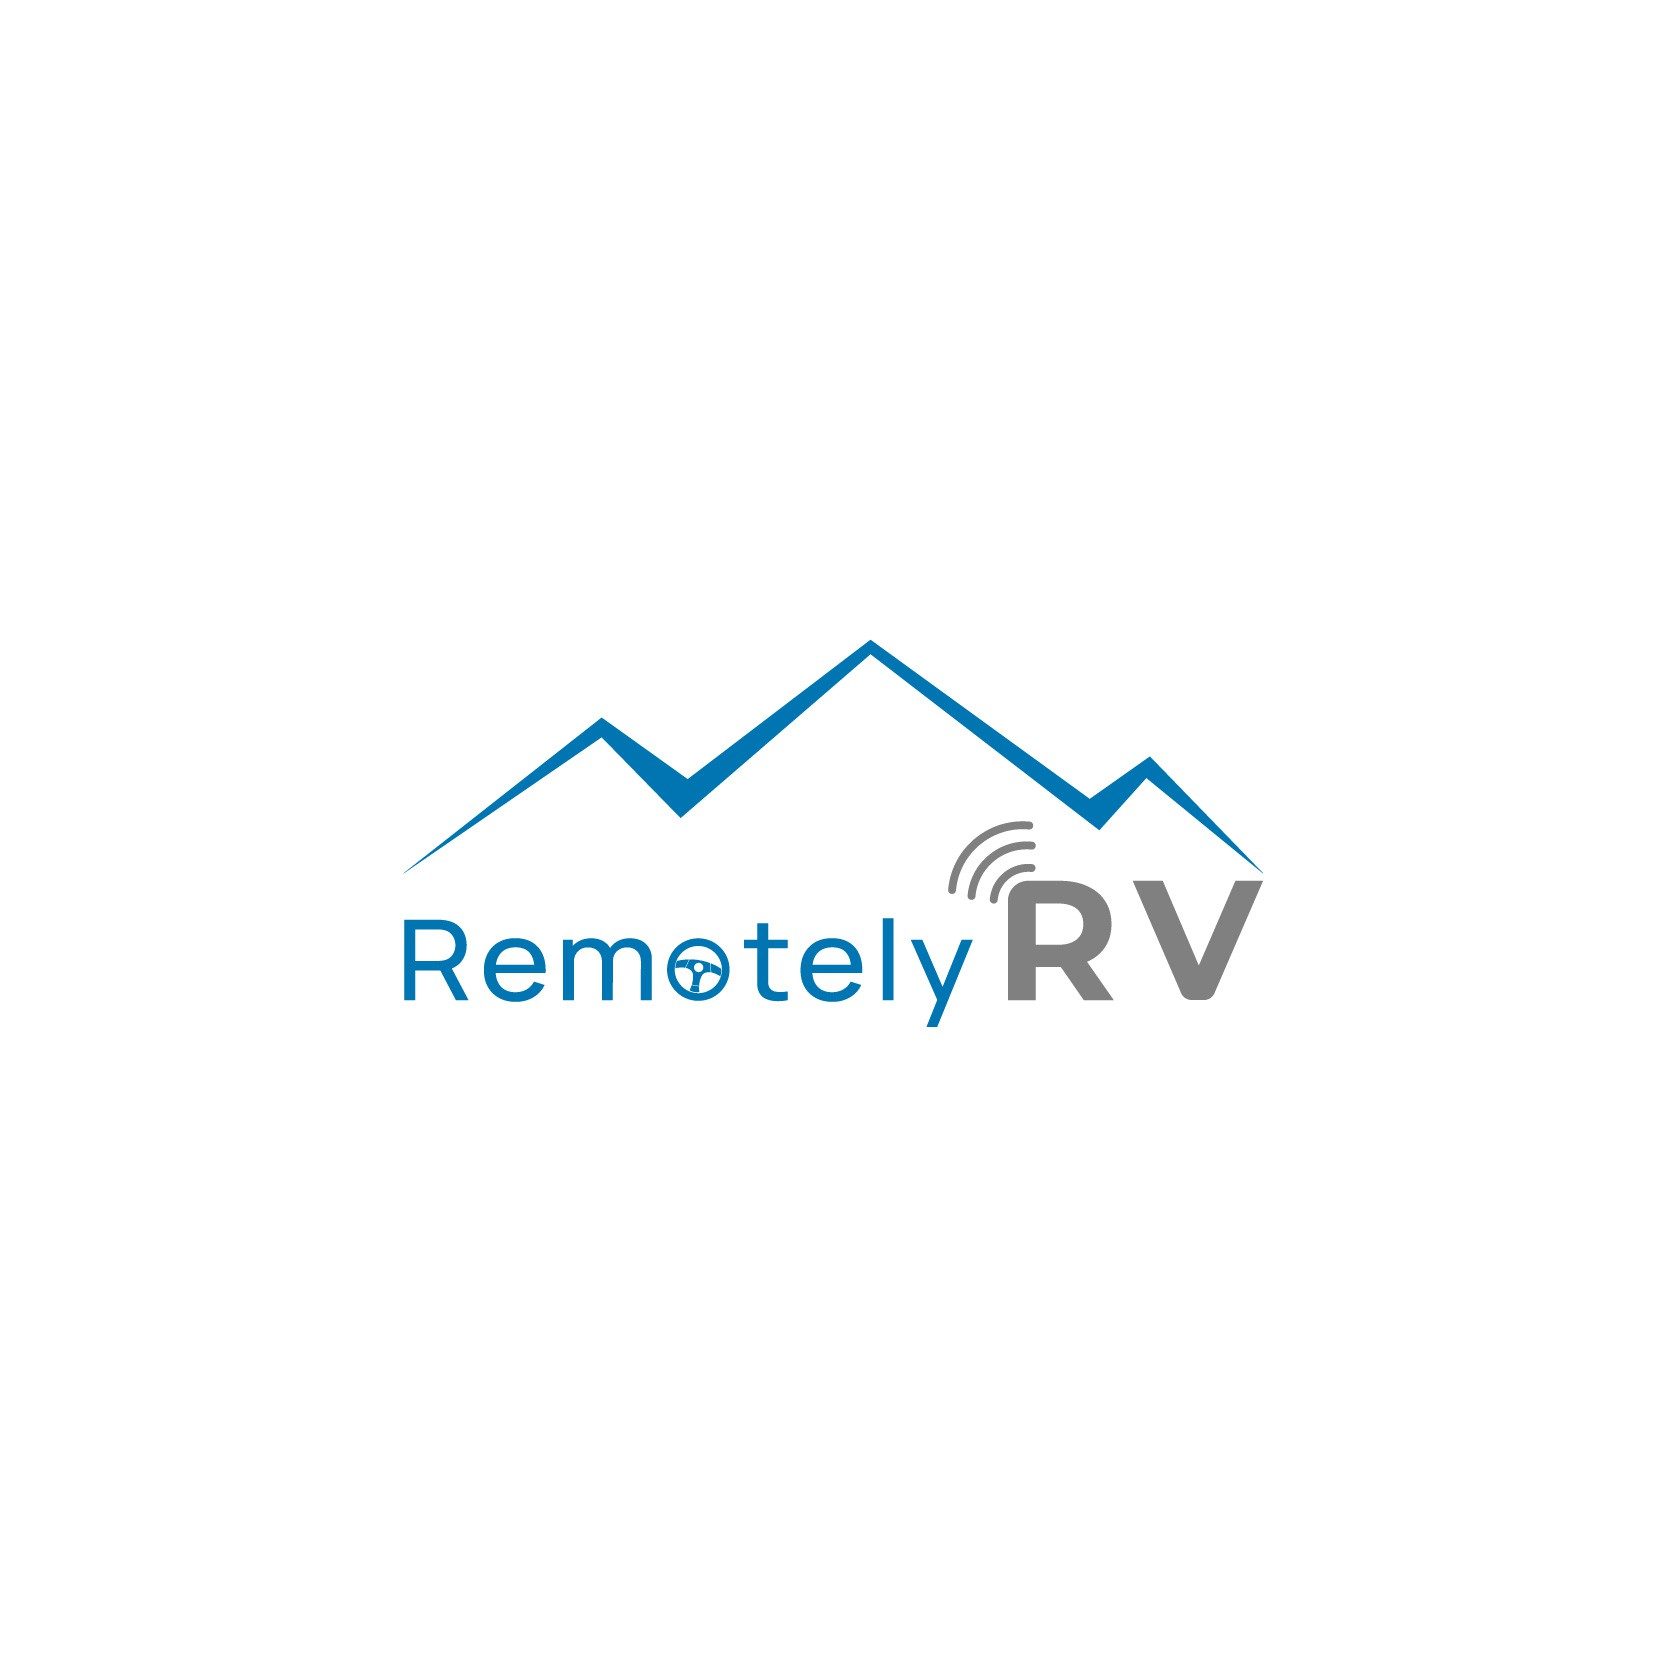 Remote work blog to attract adventure seekers!